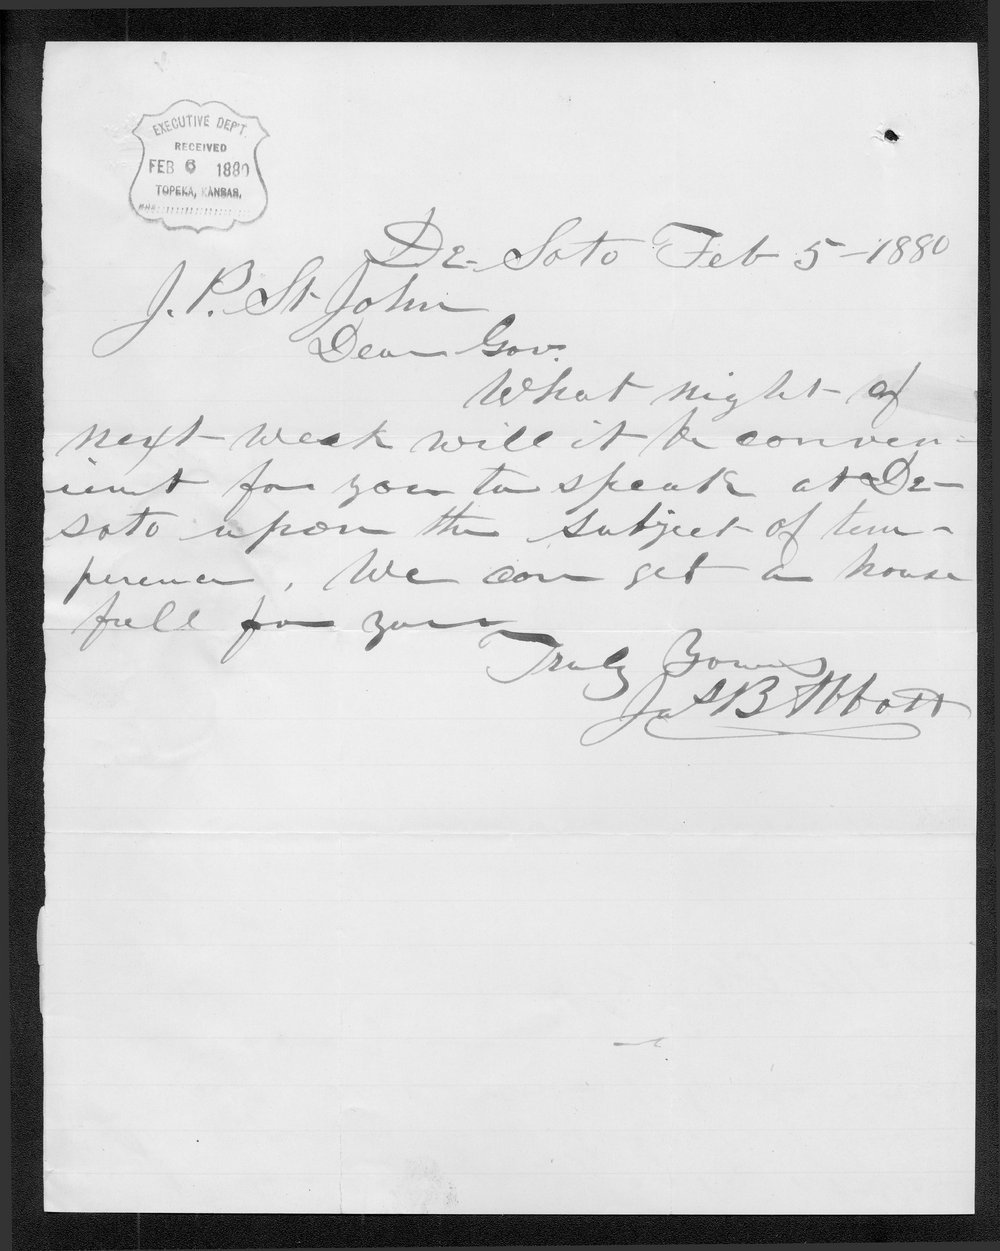 J.B. Abbott to Governor John St. John